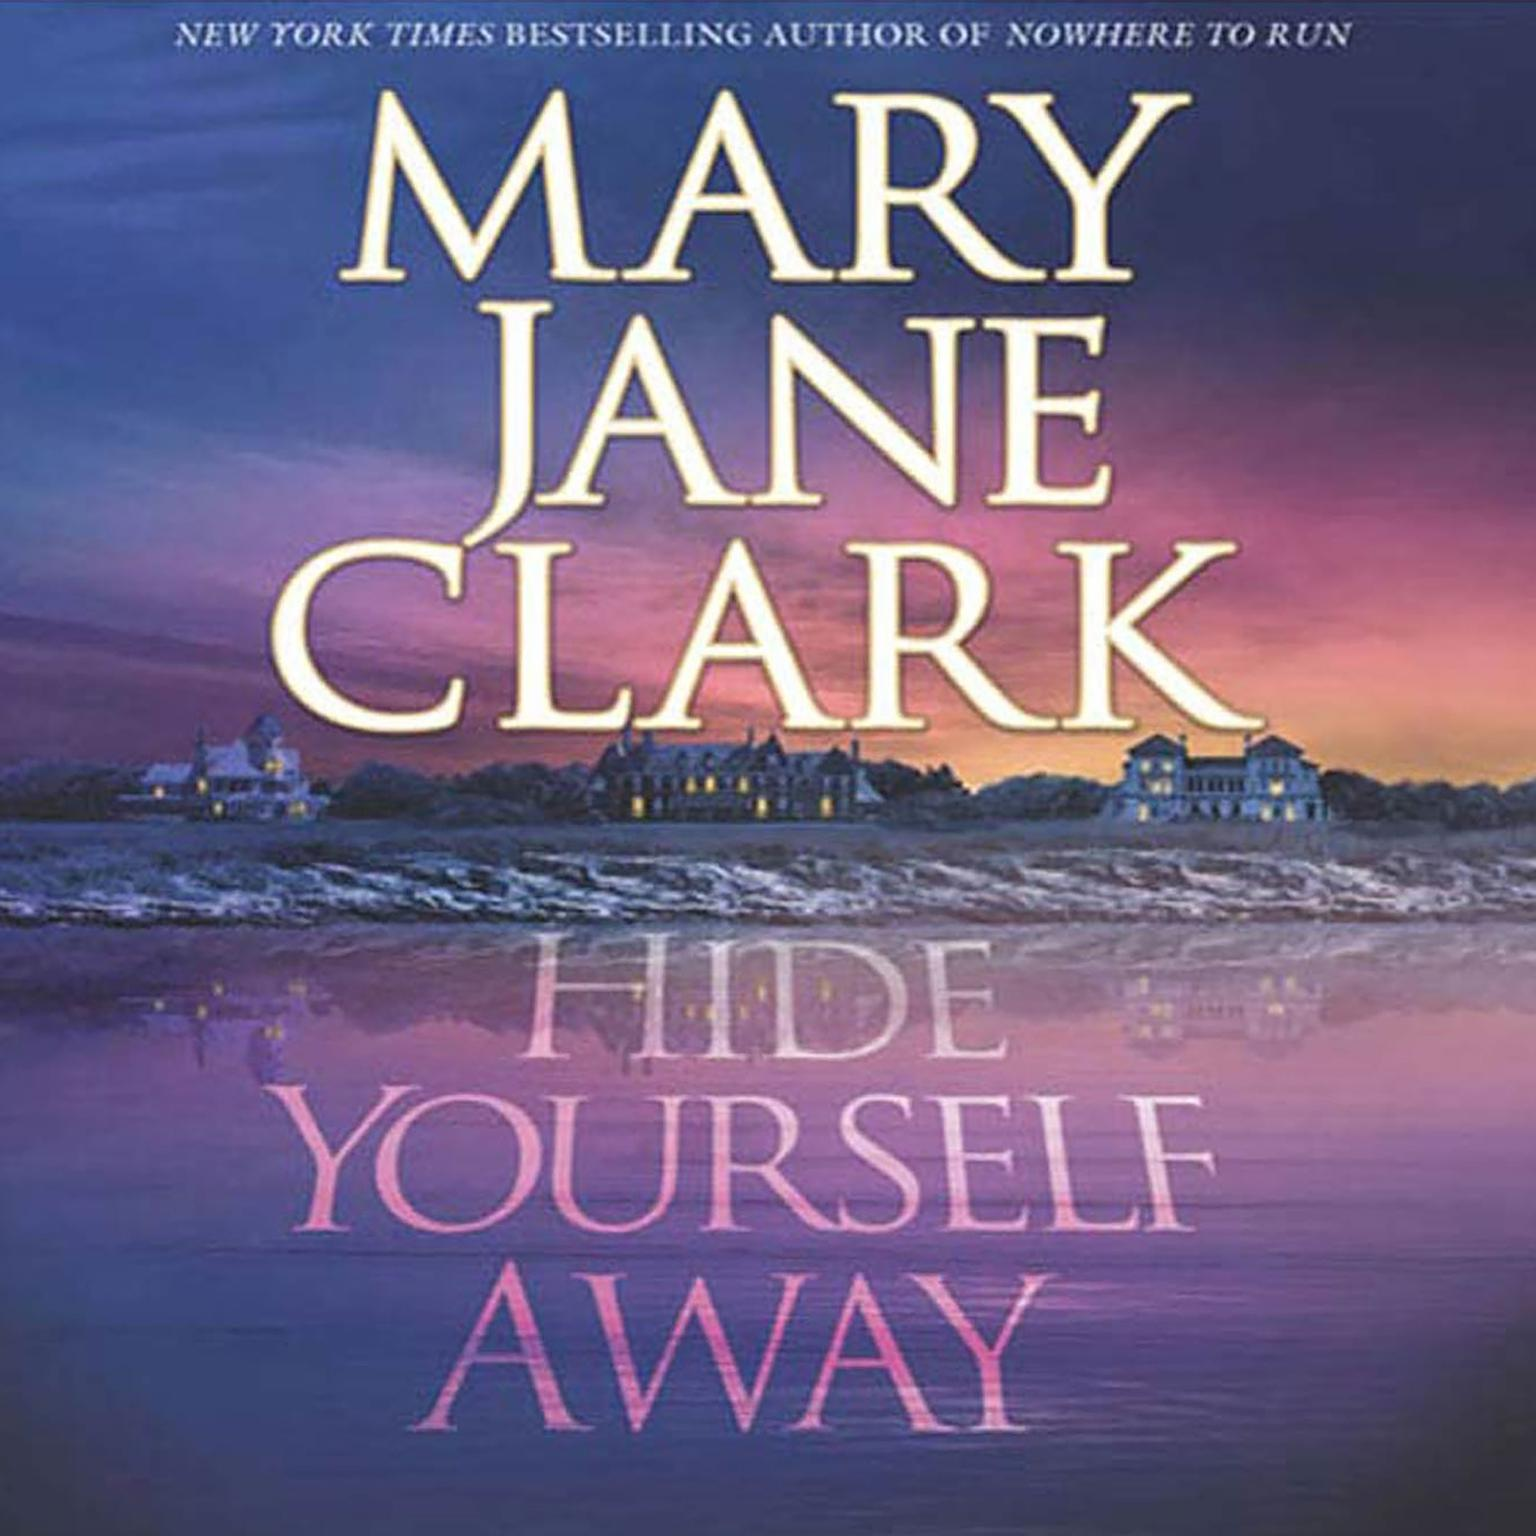 Printable Hide Yourself Away Audiobook Cover Art